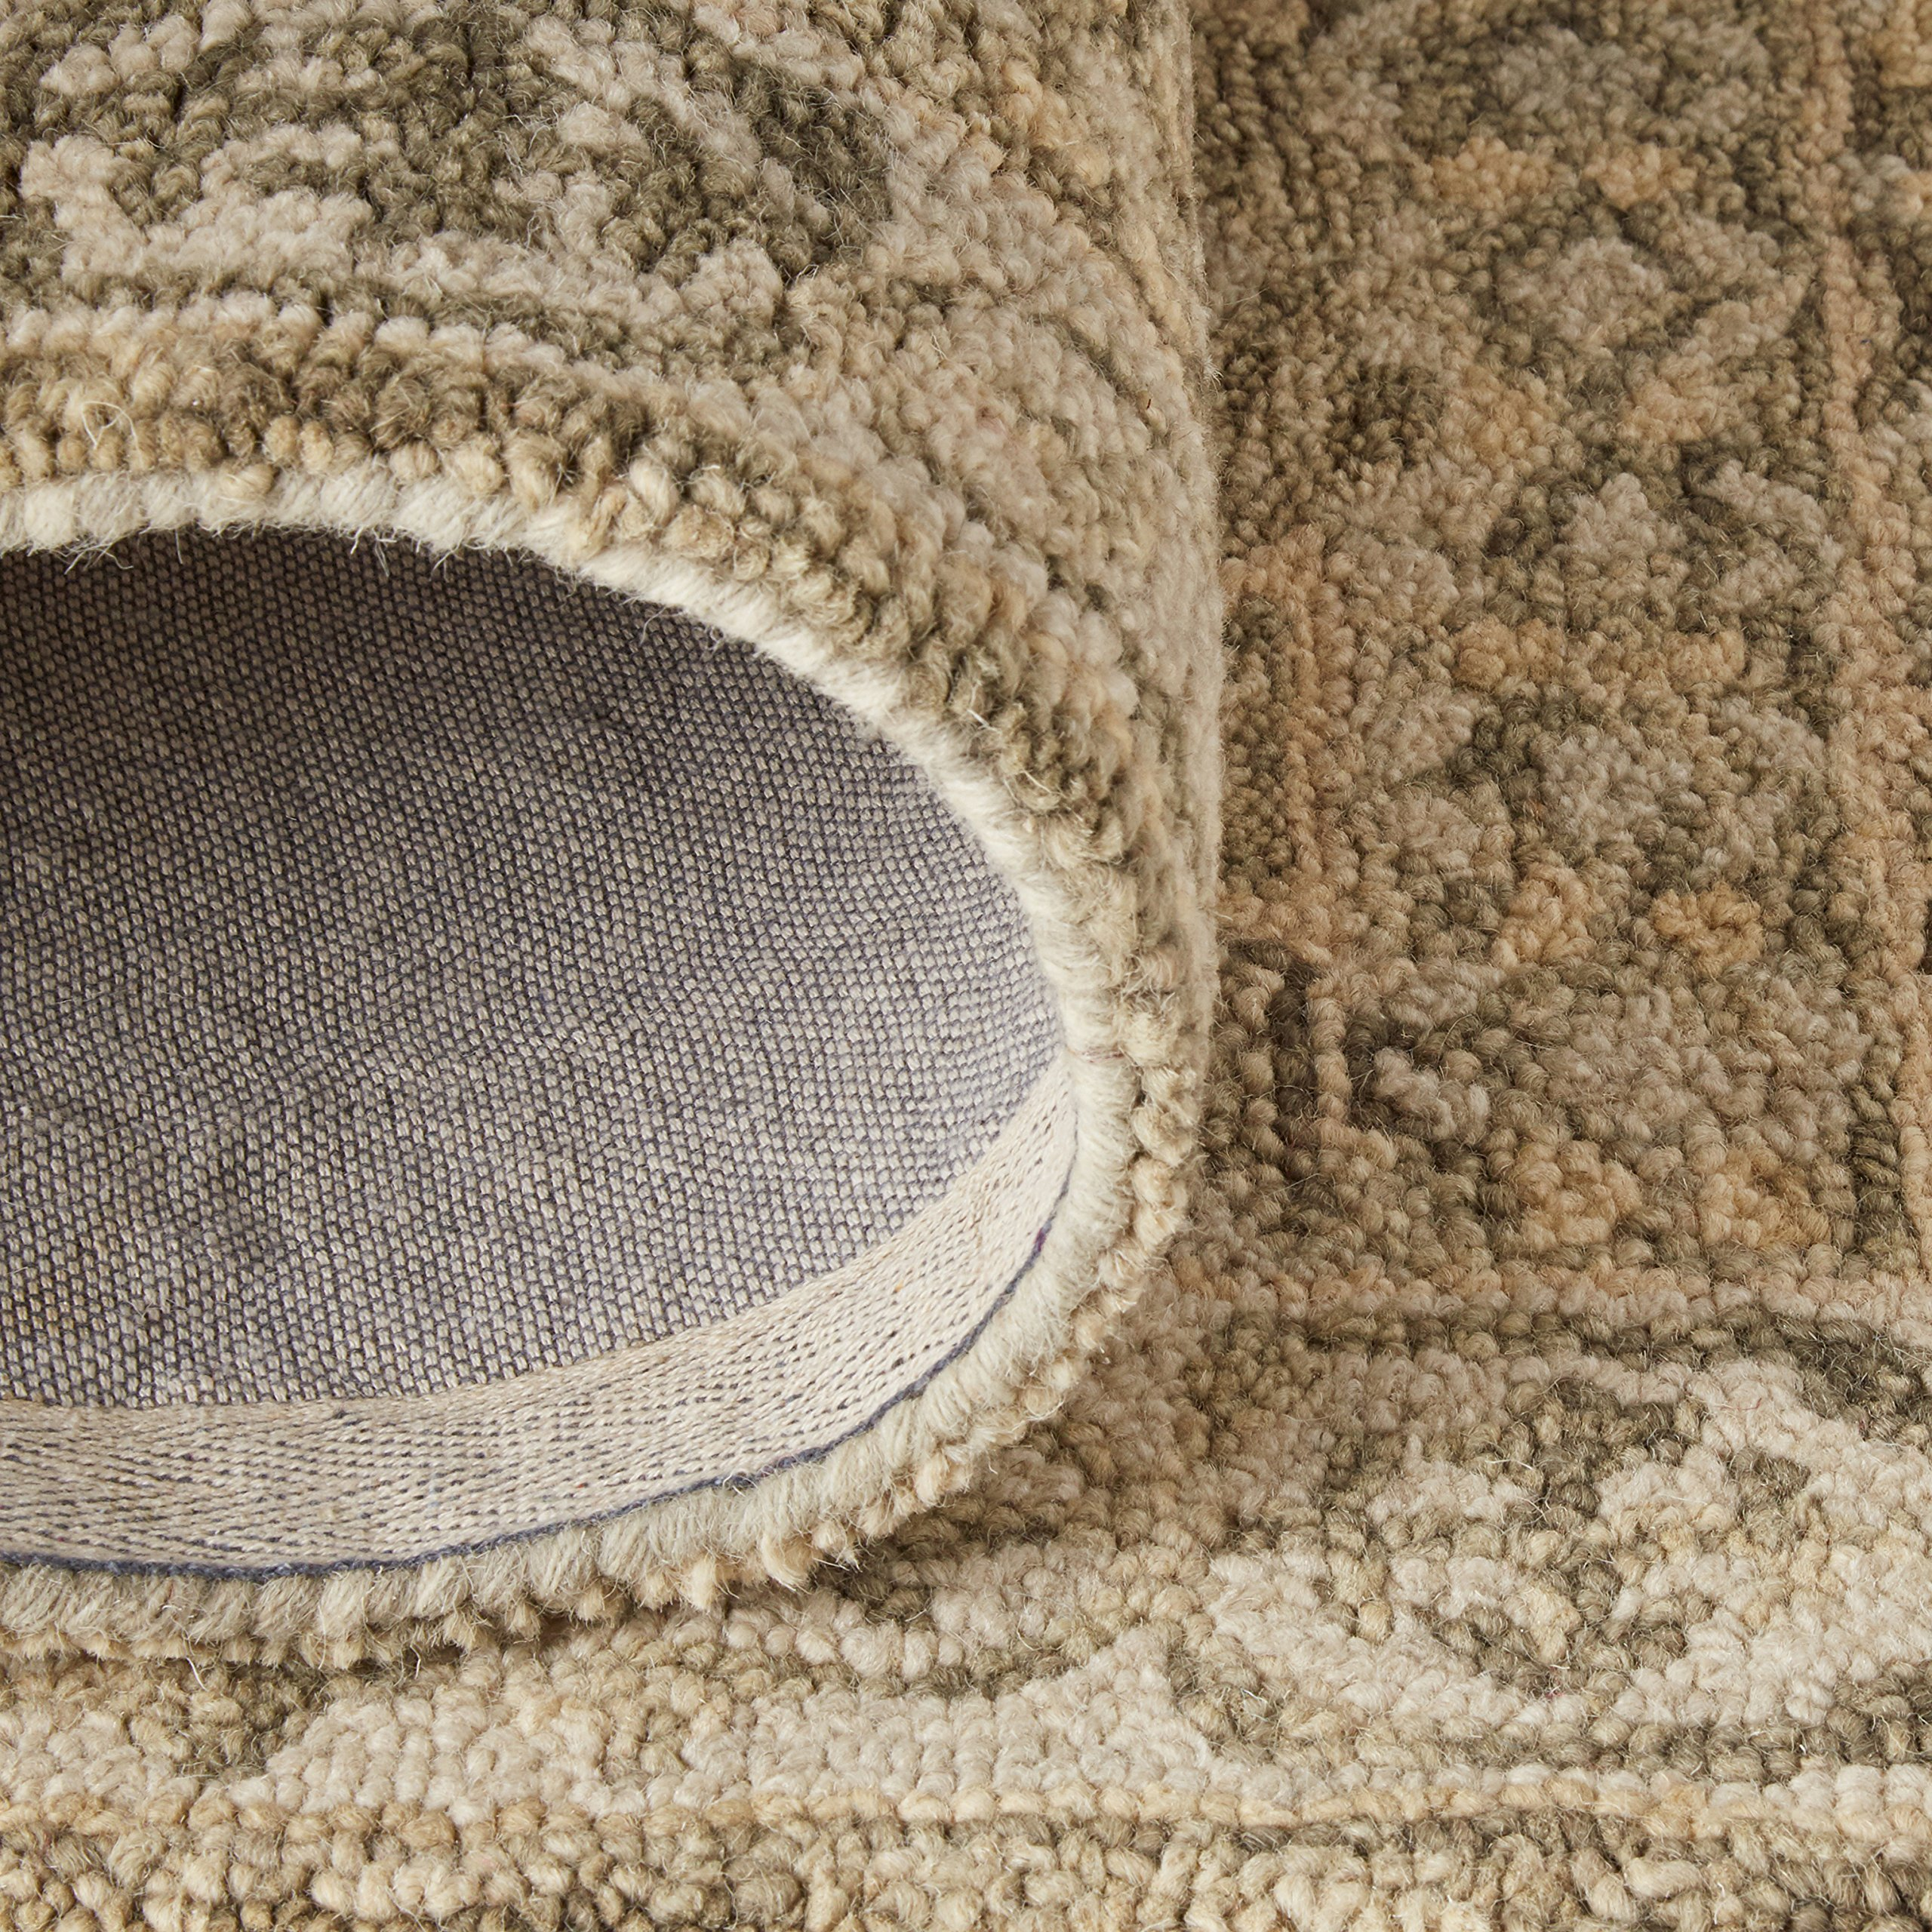 Stone & Beam Kelsea Transitional Wool Area Rug, 8' x 10', Beige and Grey by Stone & Beam (Image #6)